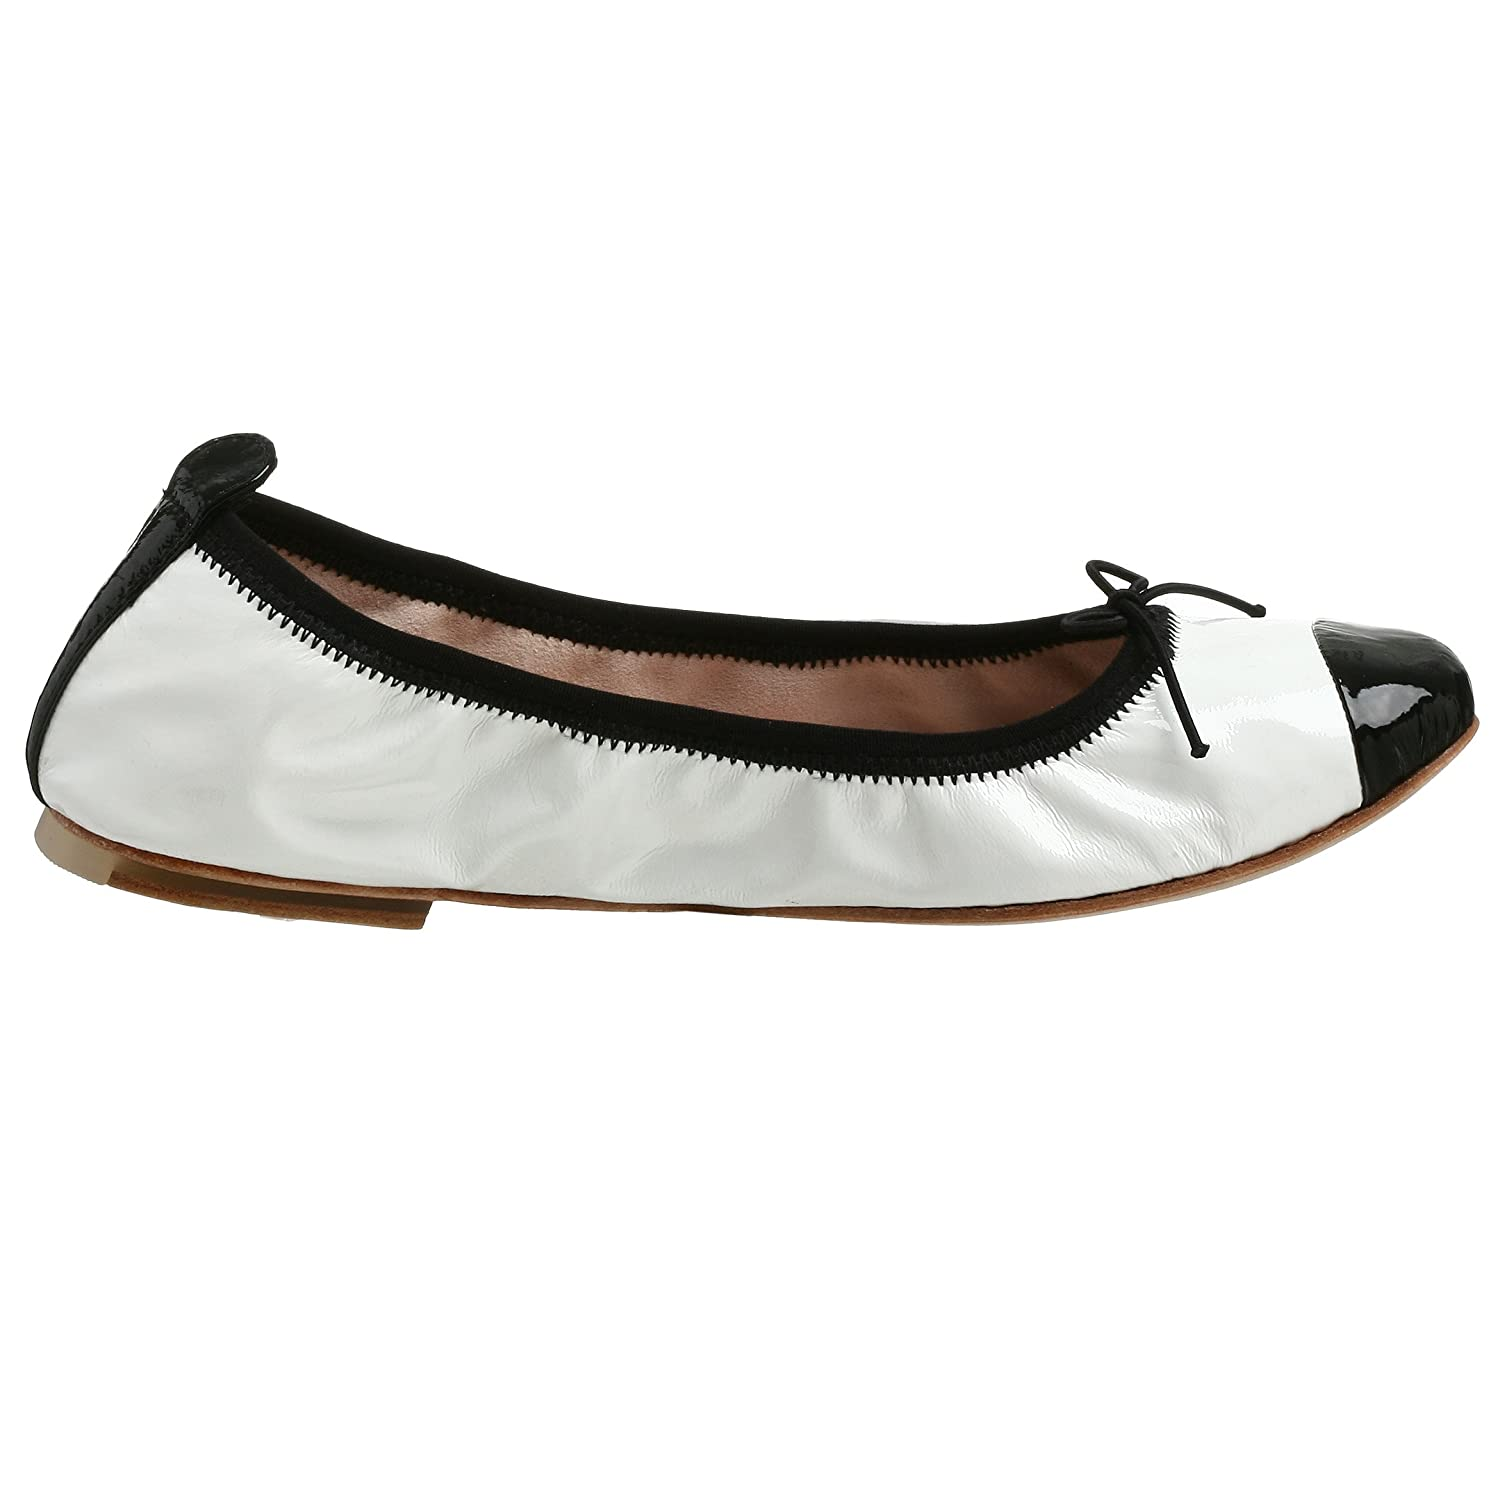 Bloch London Luxury Ballet Flat Ballet Flat - Free Overnight Shipping & Return Shipping: Endless.com from endless.com